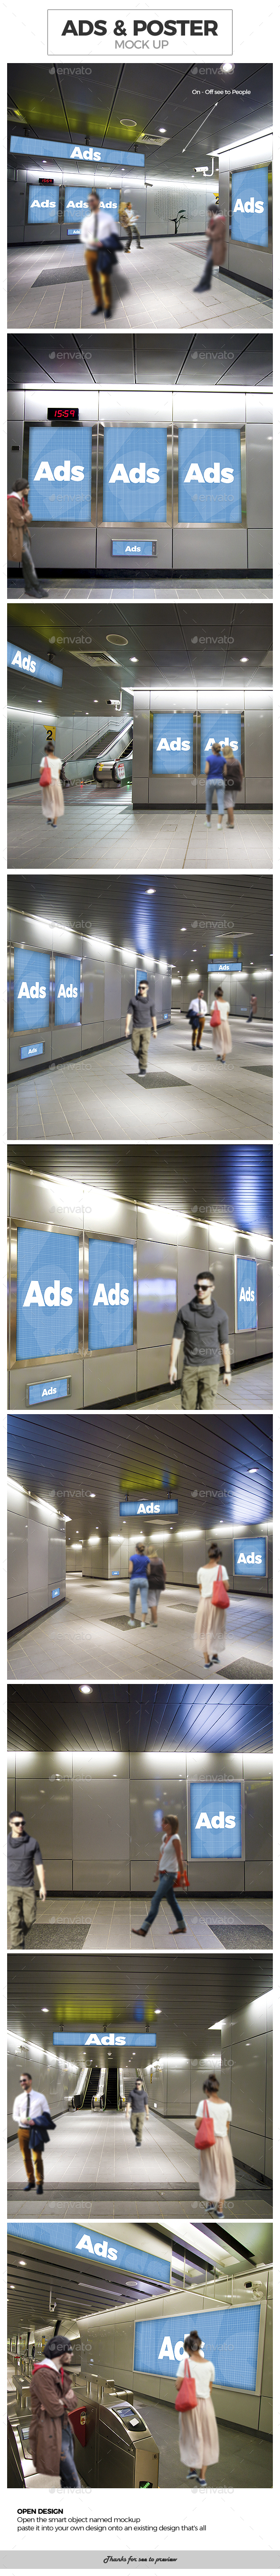 Ads Poster Billboard Mockups - Miscellaneous Apparel